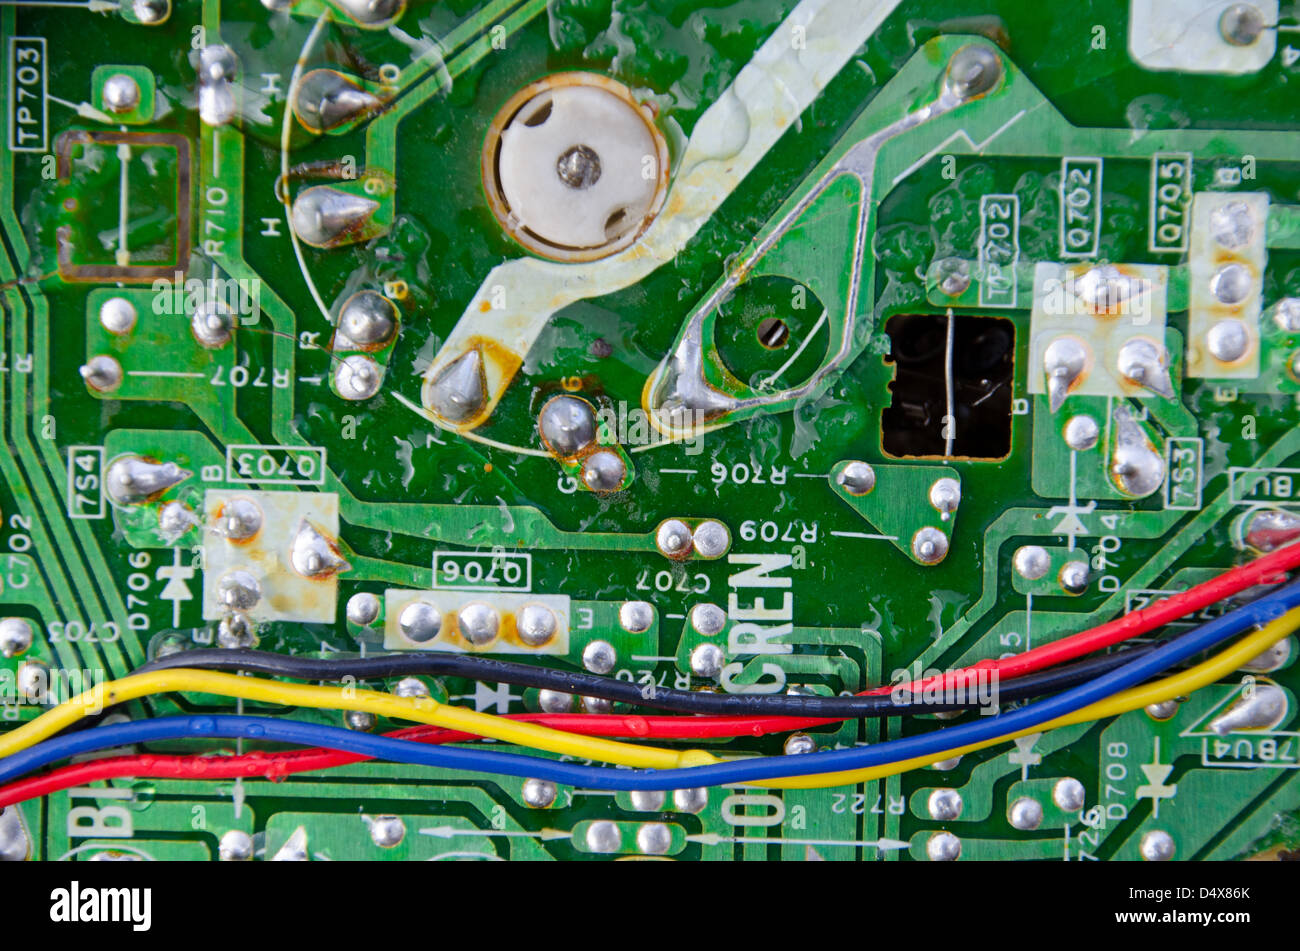 hight resolution of technology background texture of a green metal circuit board with red yellow blue and